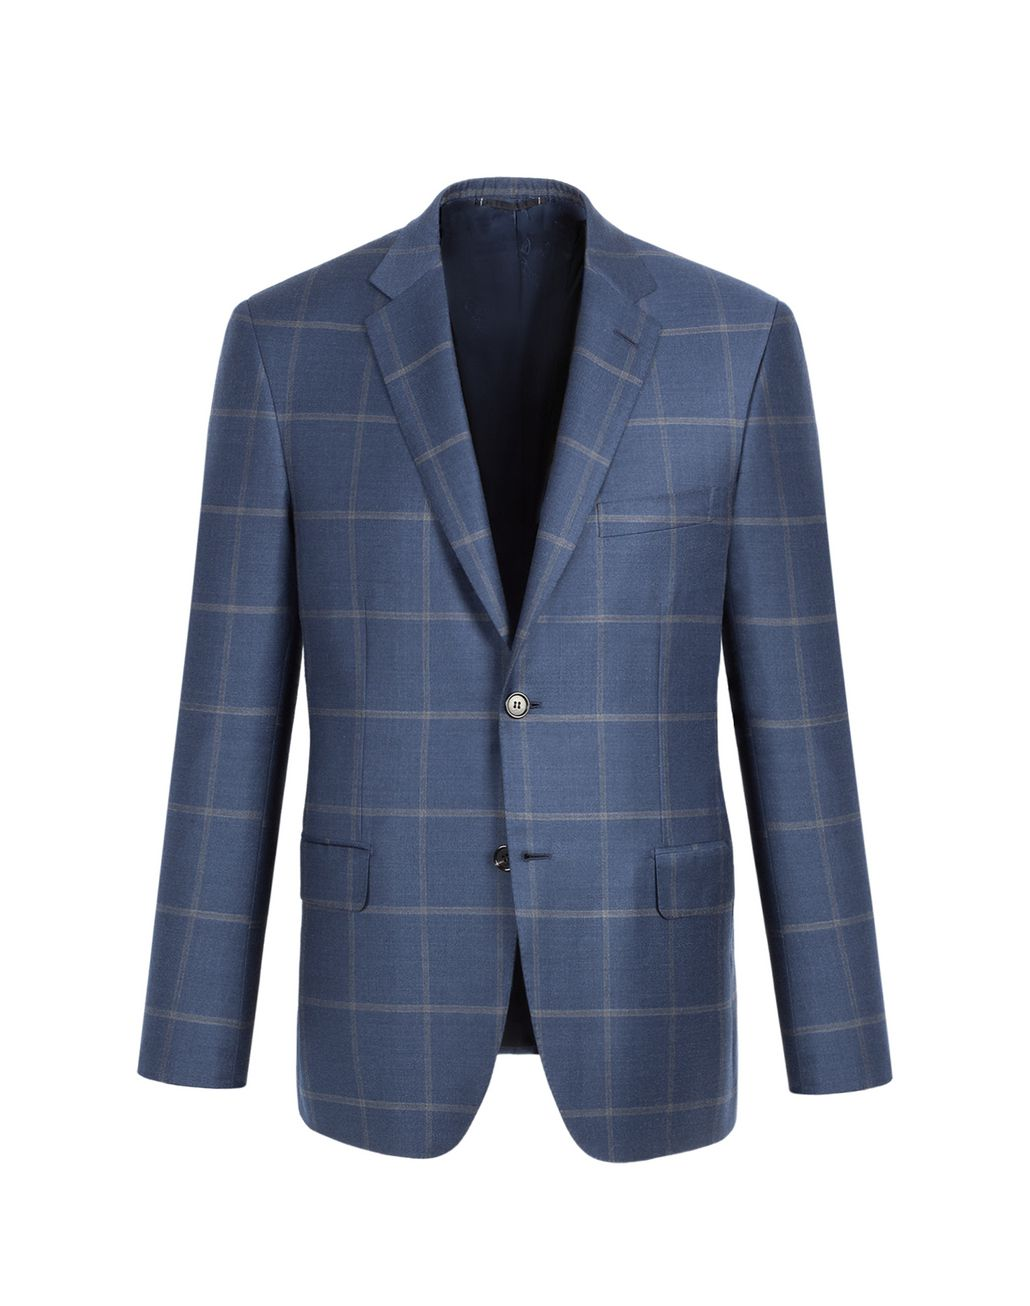 BRIONI Blue and Grey Overcheck Ravello Jacket Jackets Man f